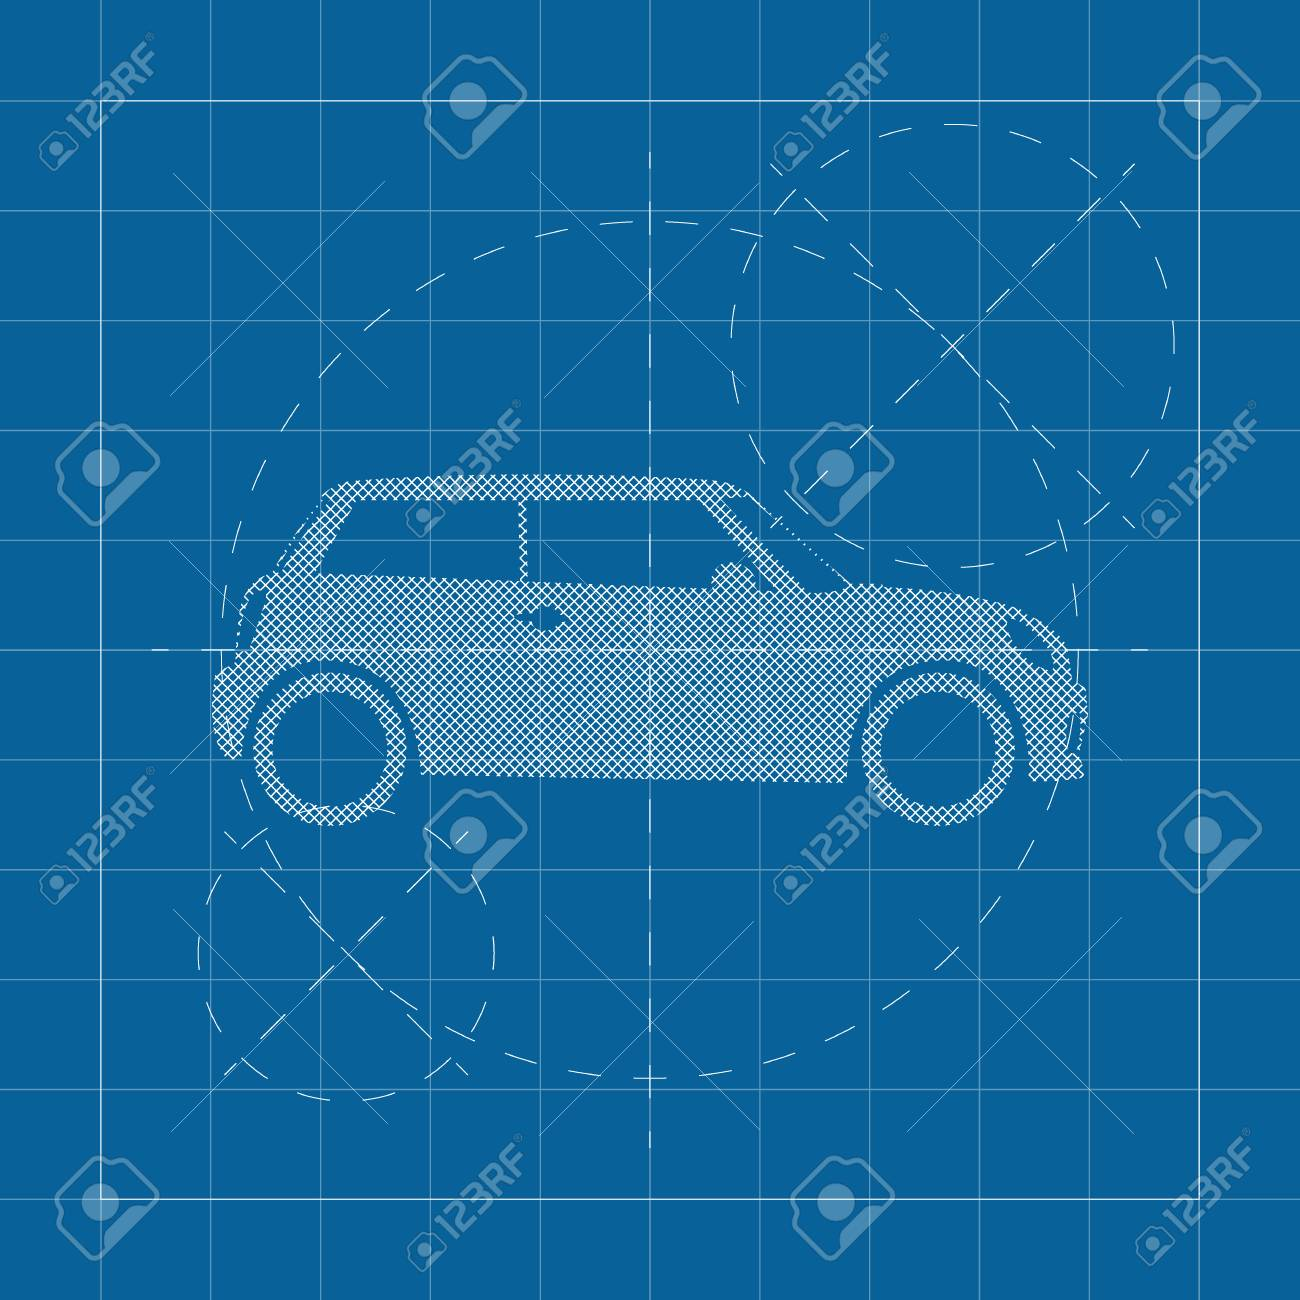 Modern Car On Blueprint Royalty Free Cliparts, Vectors, And Stock ...